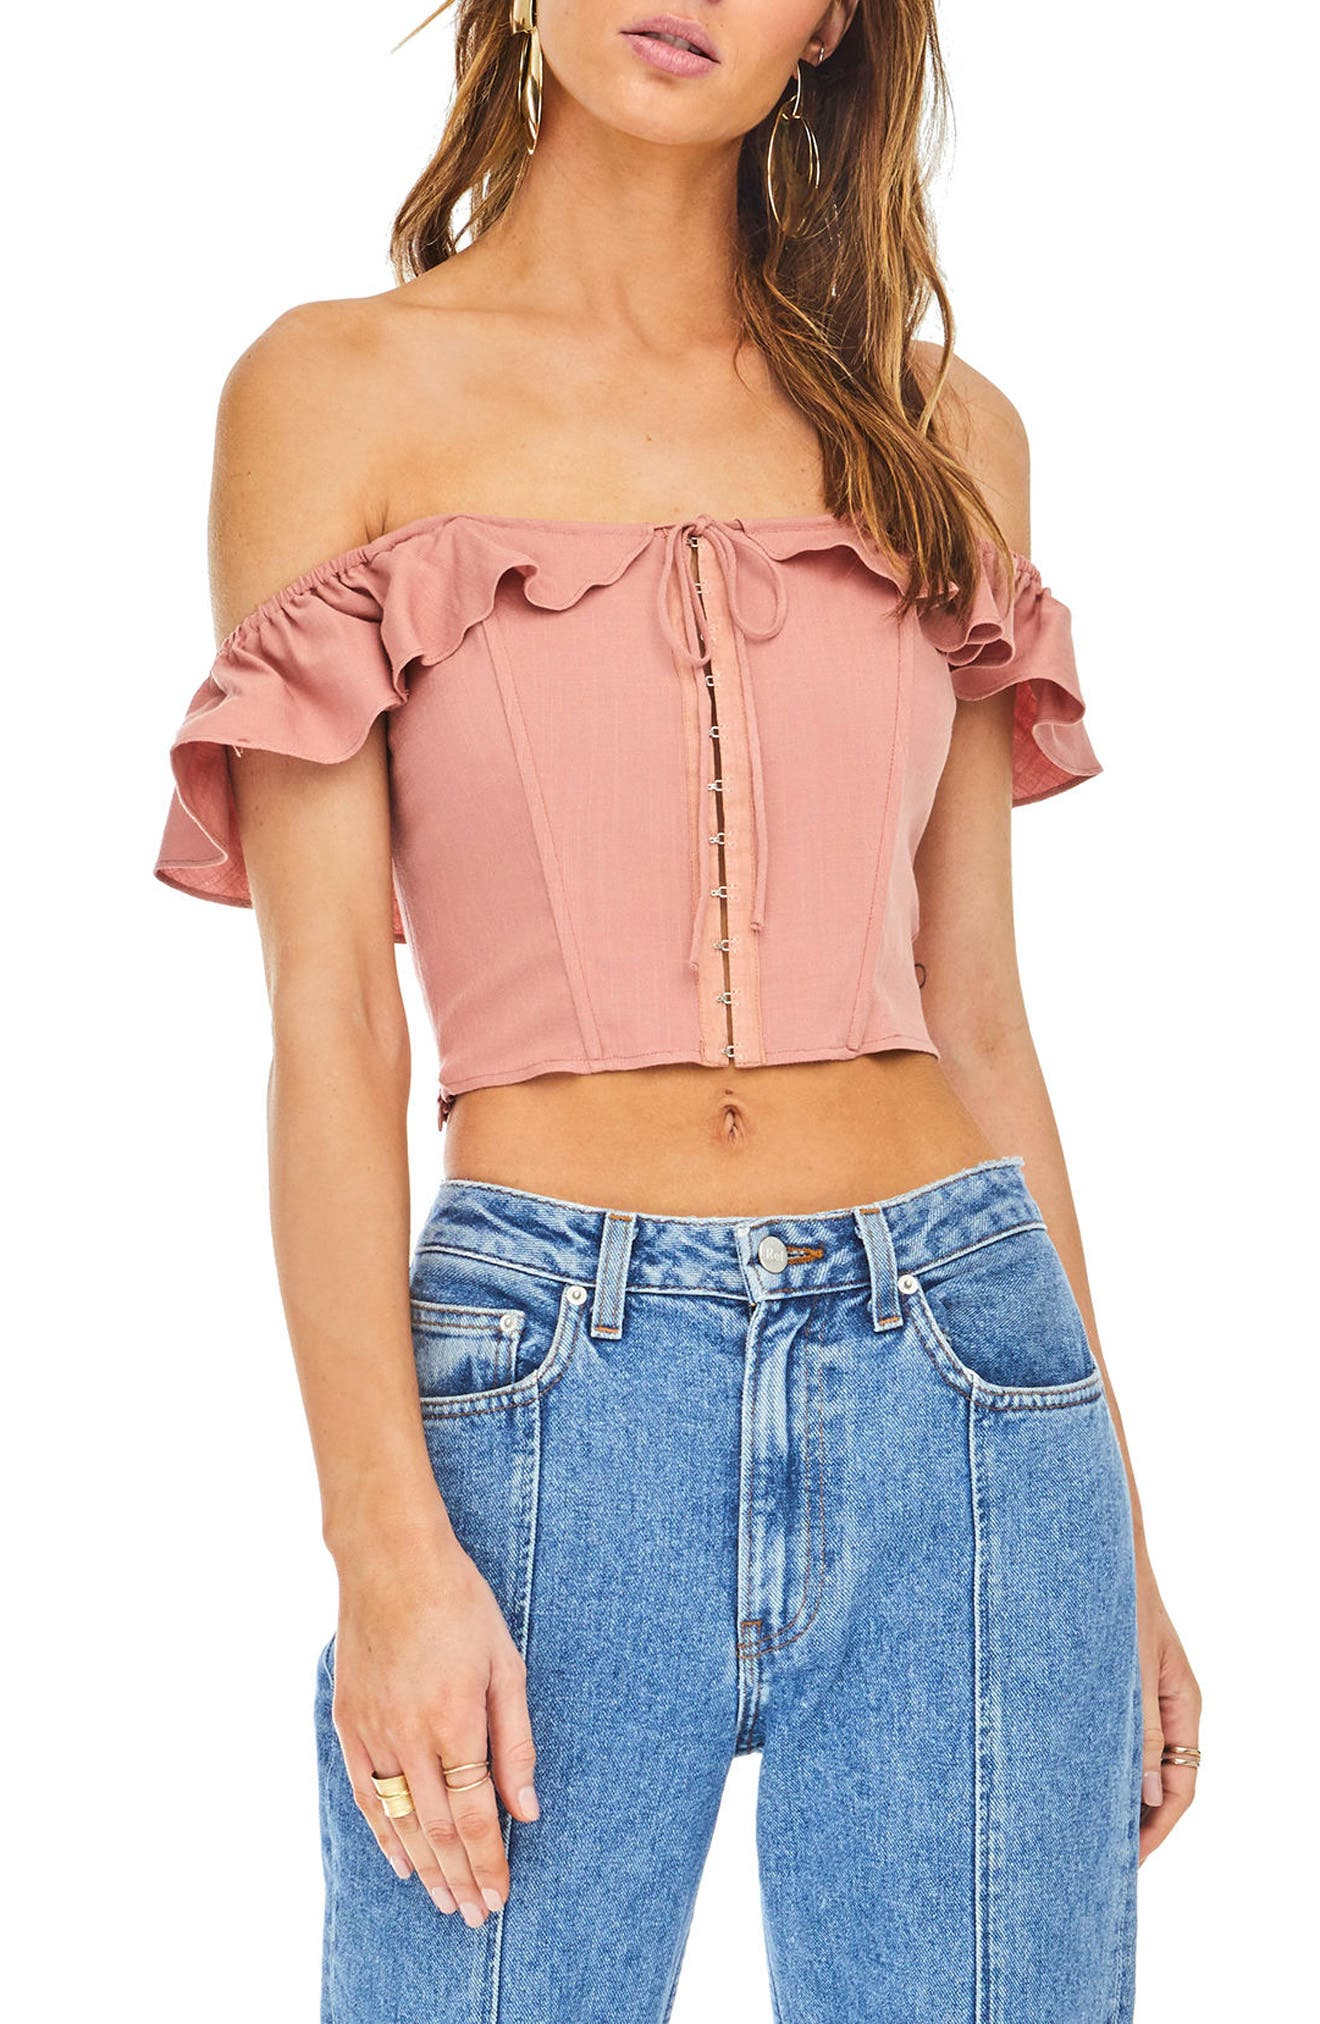 Abella Off the Shoulder Crop Top,                             Main thumbnail 1, color,                             Carnation Pink